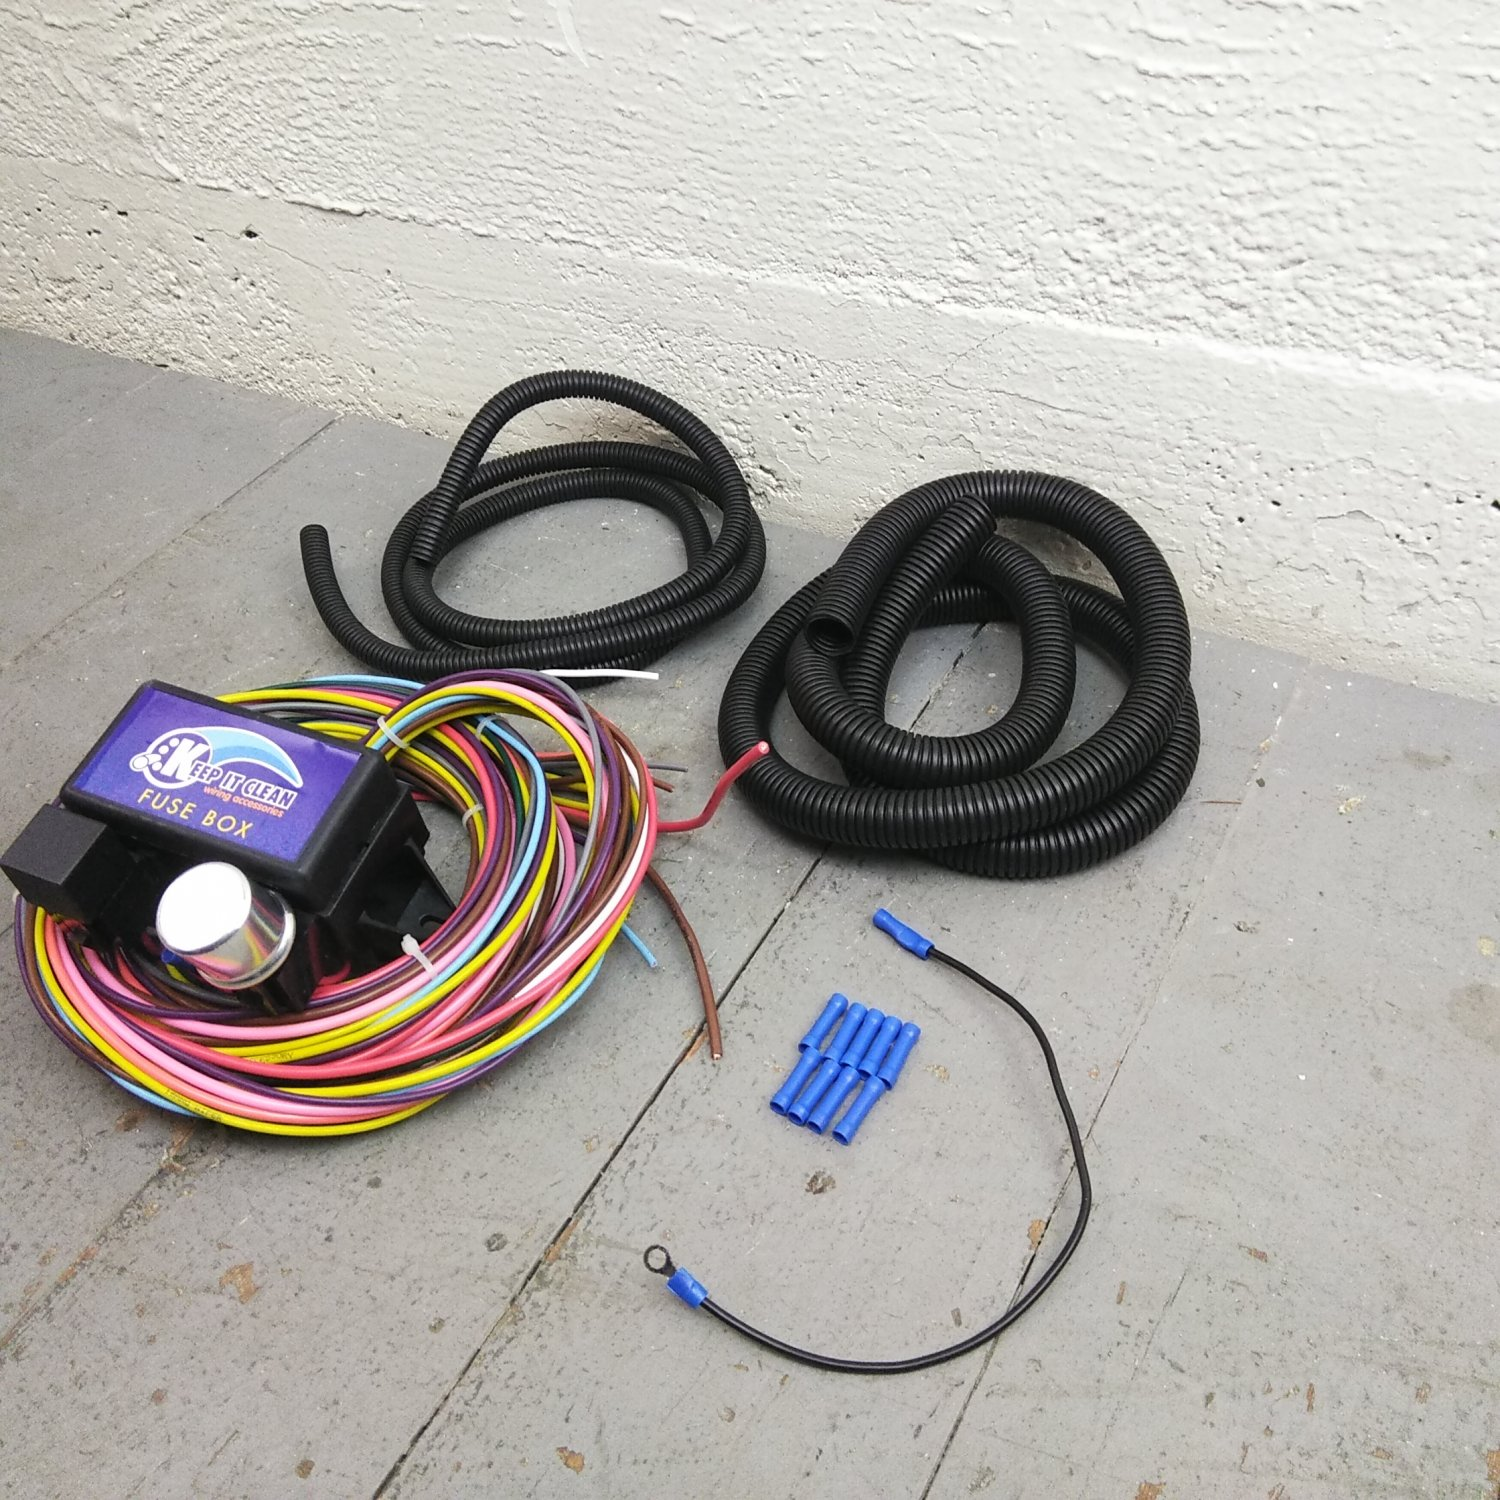 hight resolution of details about wire harness fuse block upgrade kit for early studebaker stranded insulation